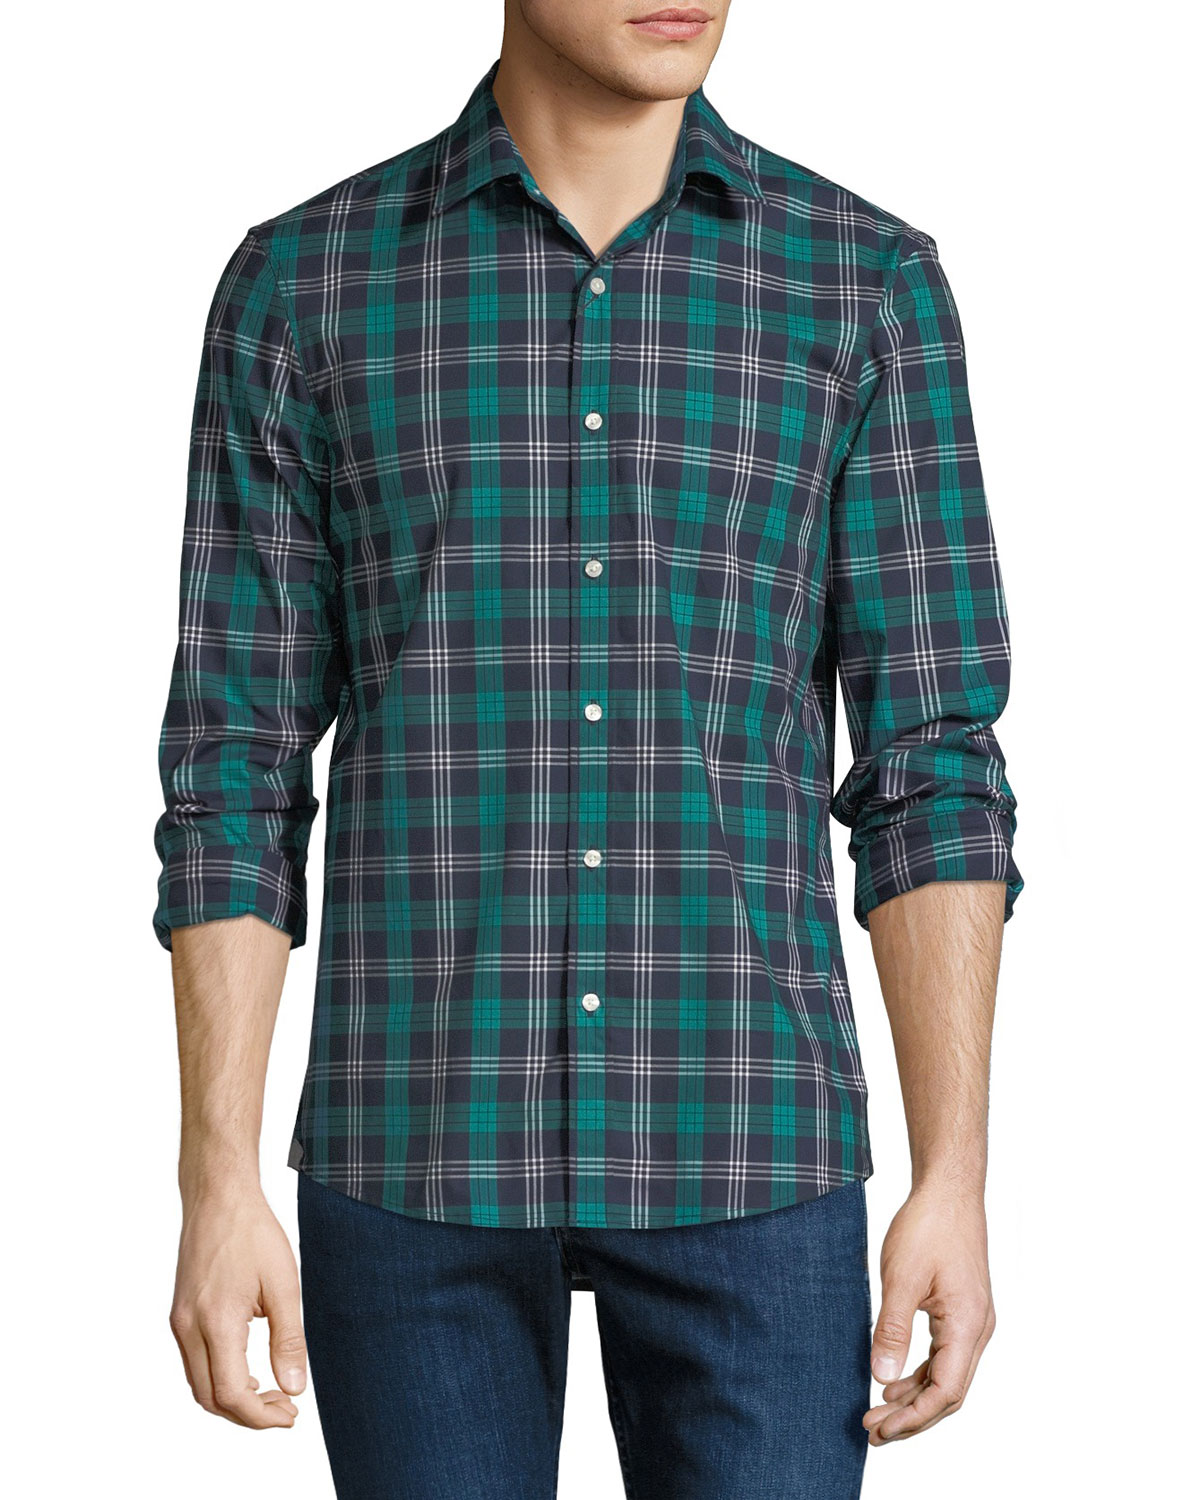 Men's Plaid Stretch Cotton Button-Down Shirt